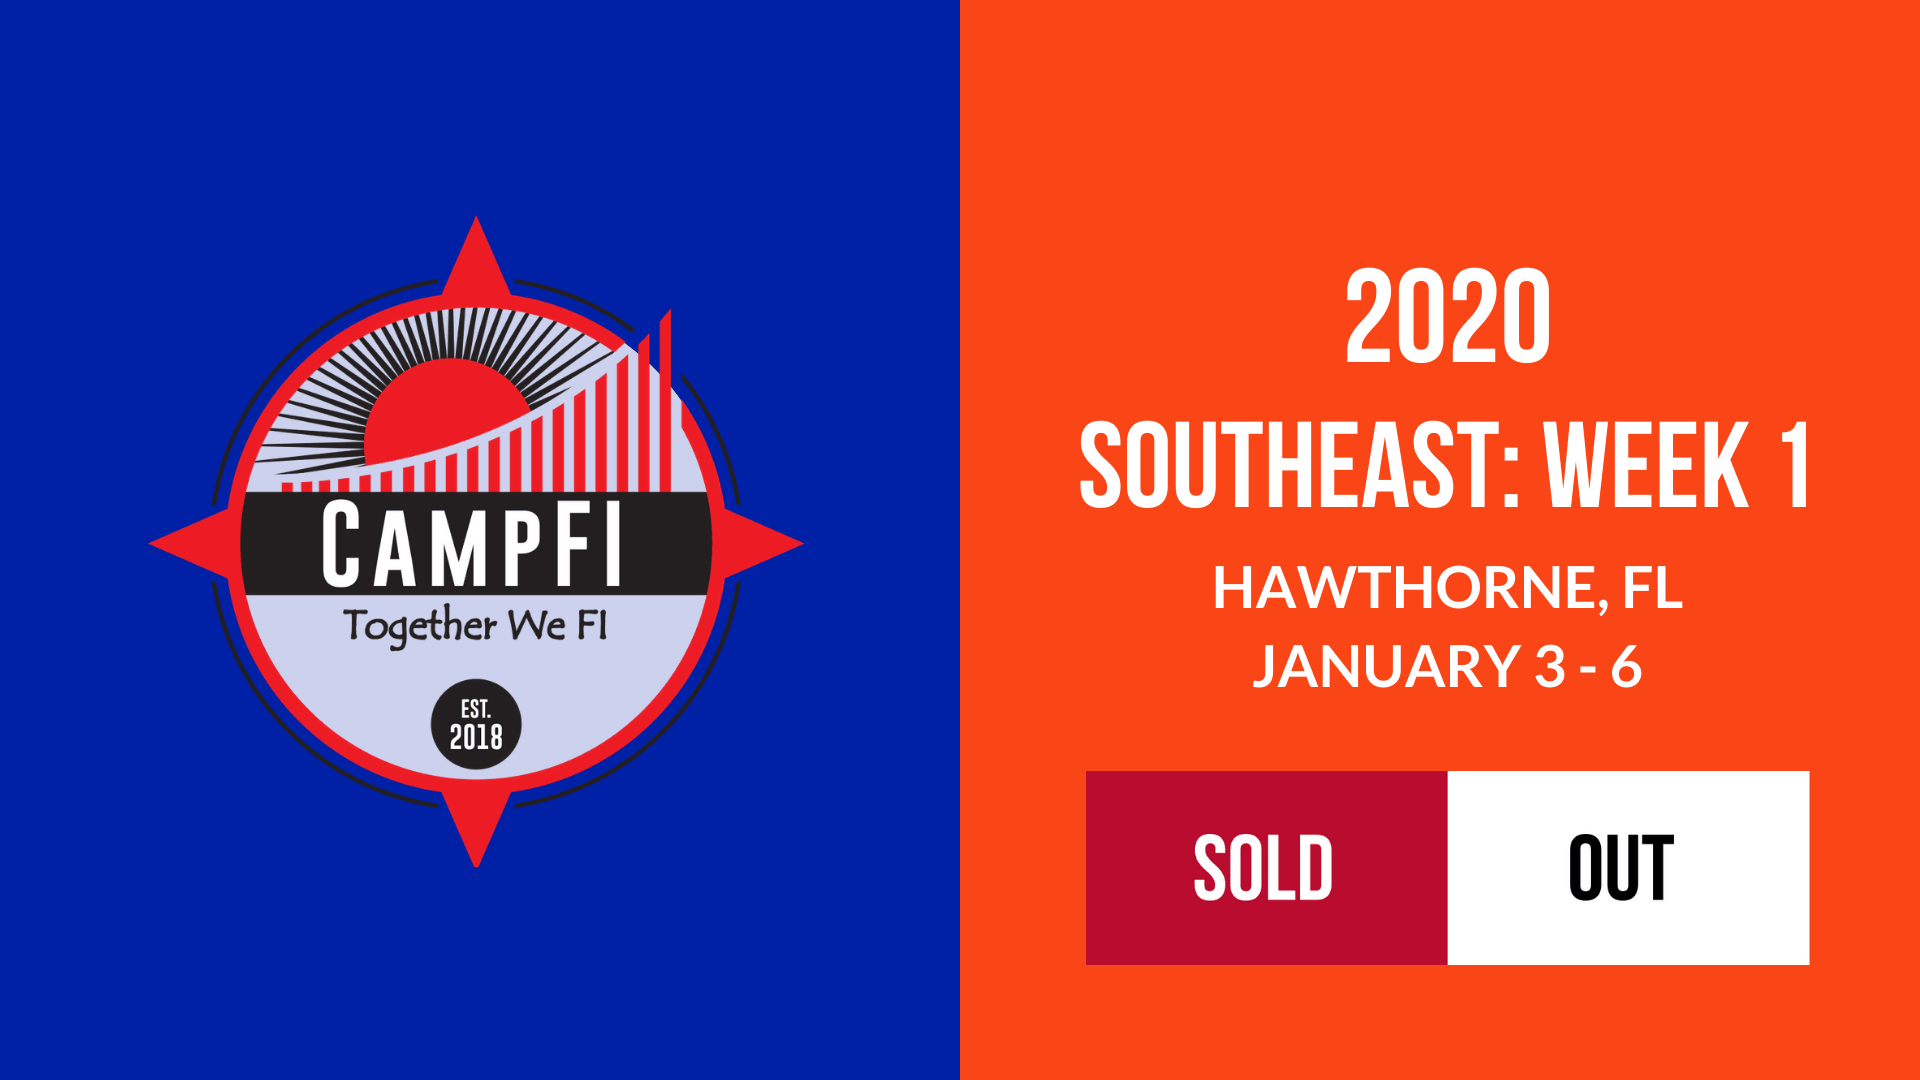 CampFI Southeast: Week 1 - Sold Out - Fiology